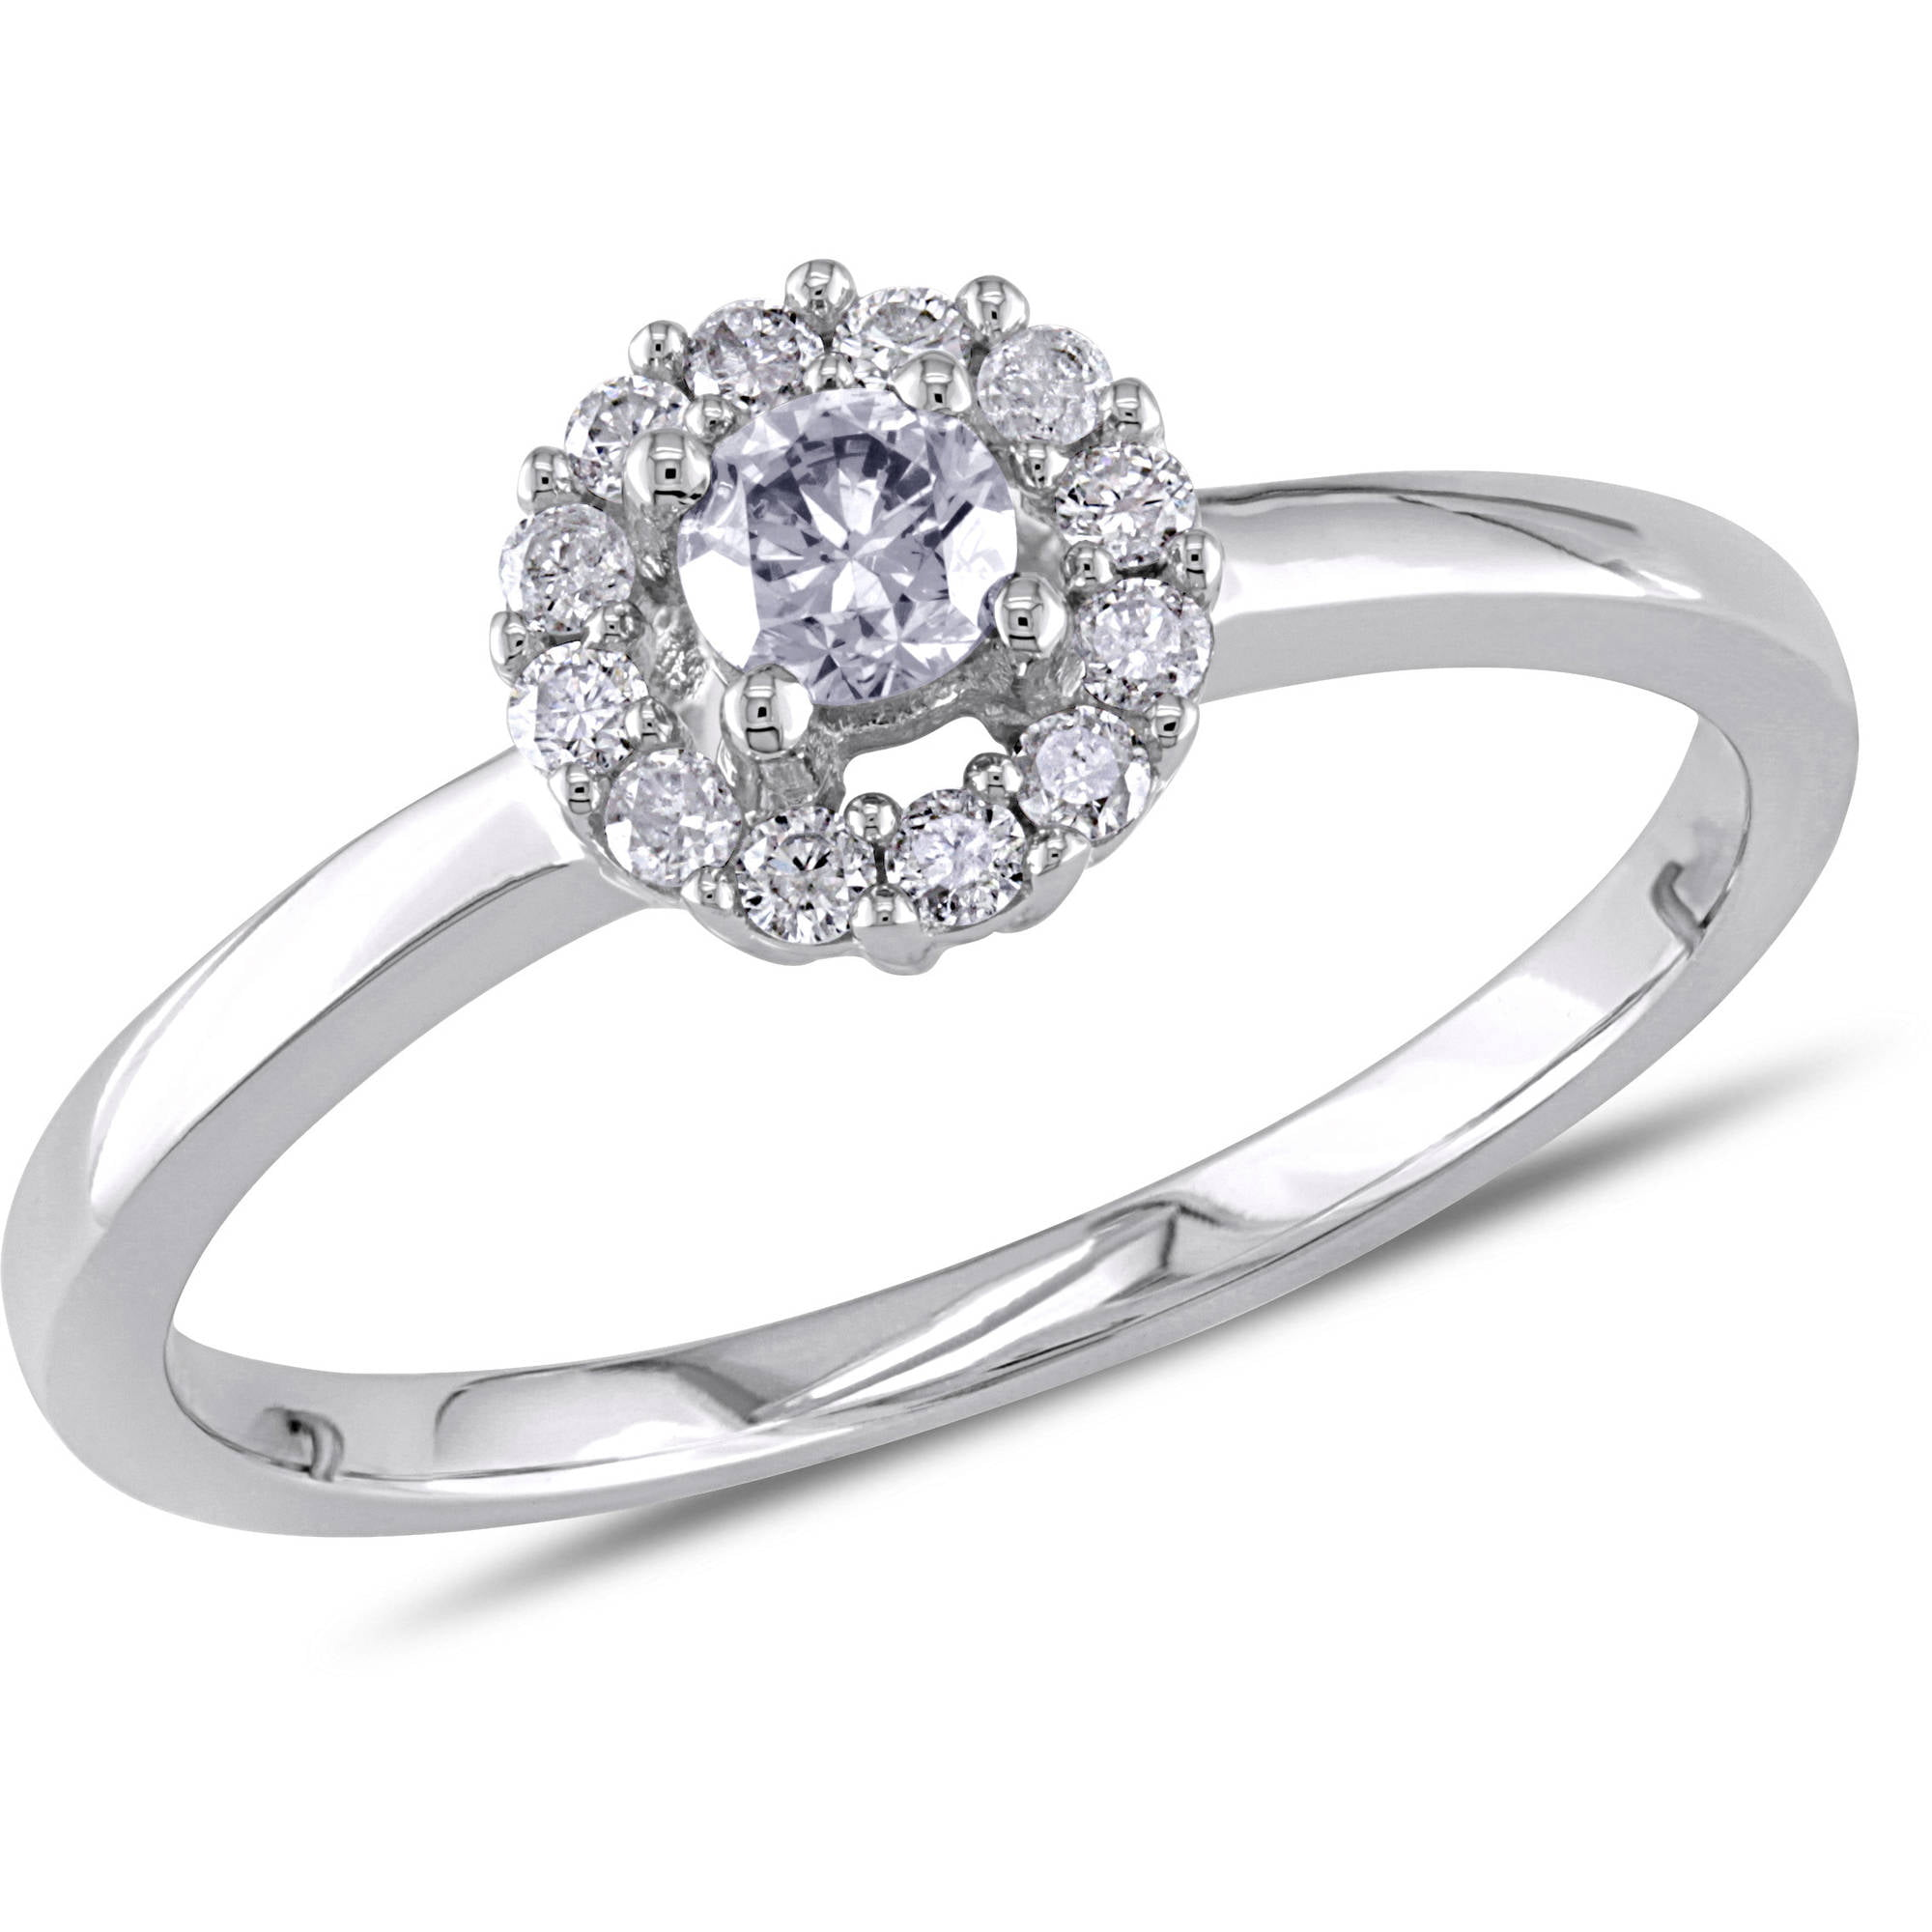 with ring diamond rings customers gavin fishtail charm the pave brian img platinum third prong engagement times